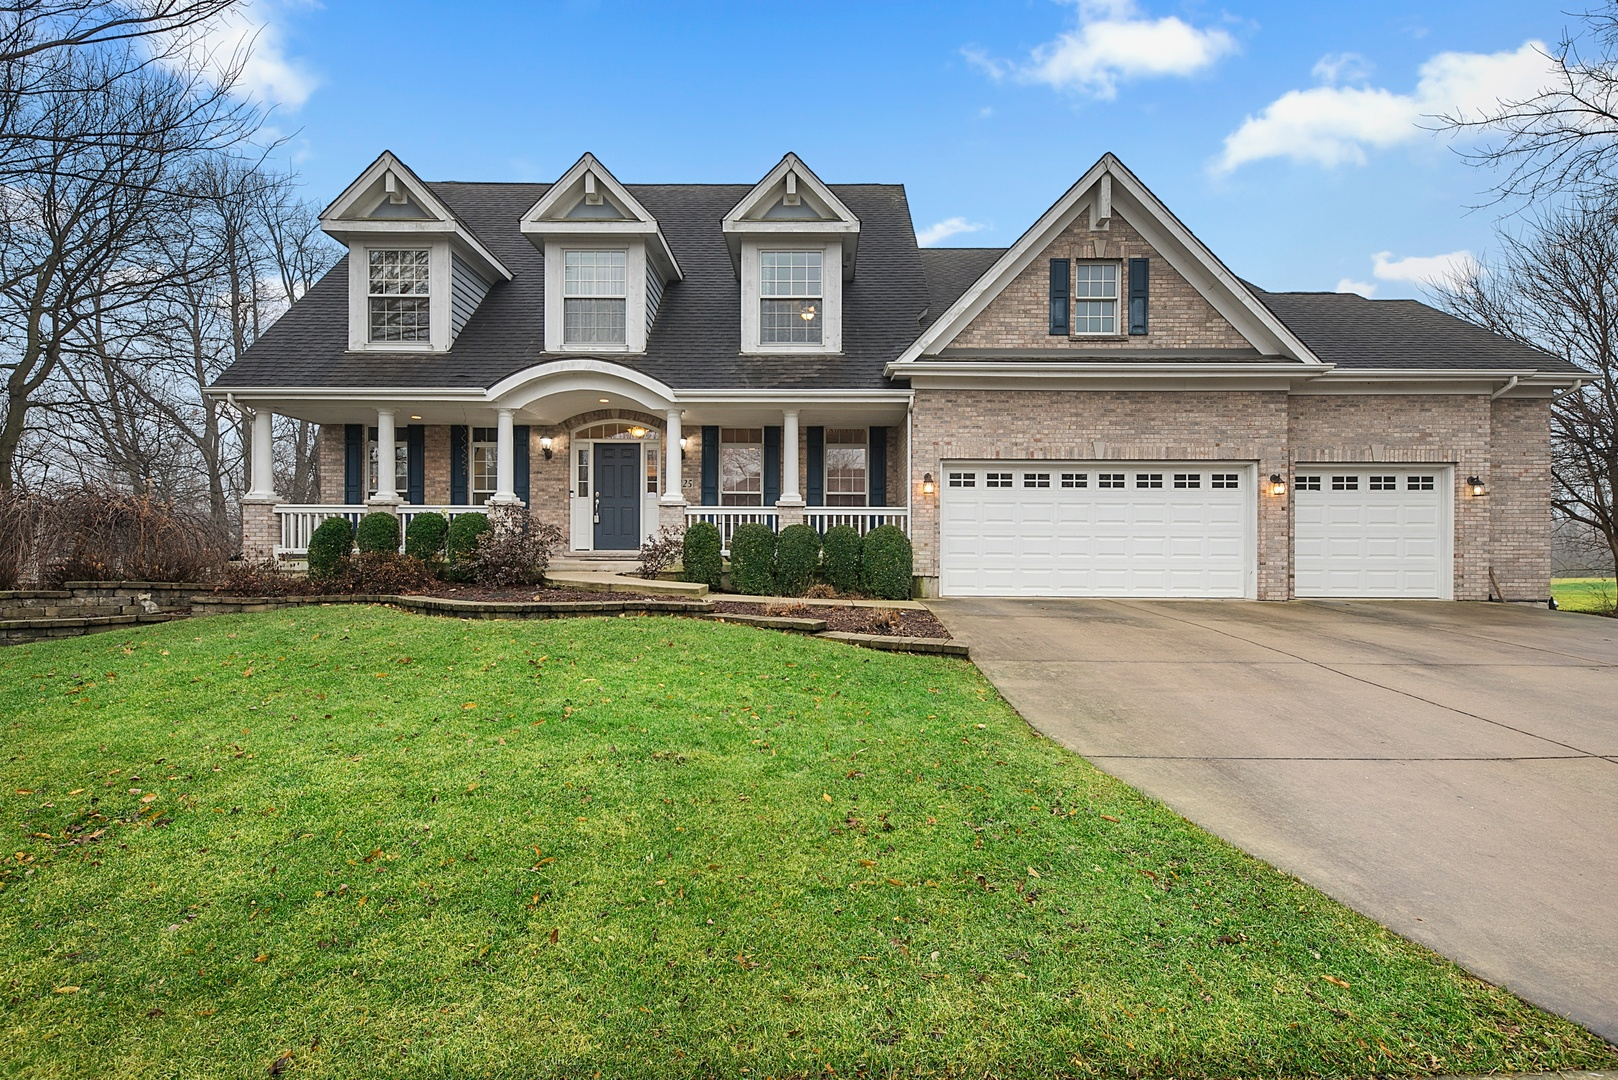 Photo for 3425 Majestic Oaks Drive, St. Charles, IL 60174 (MLS # 10608816)